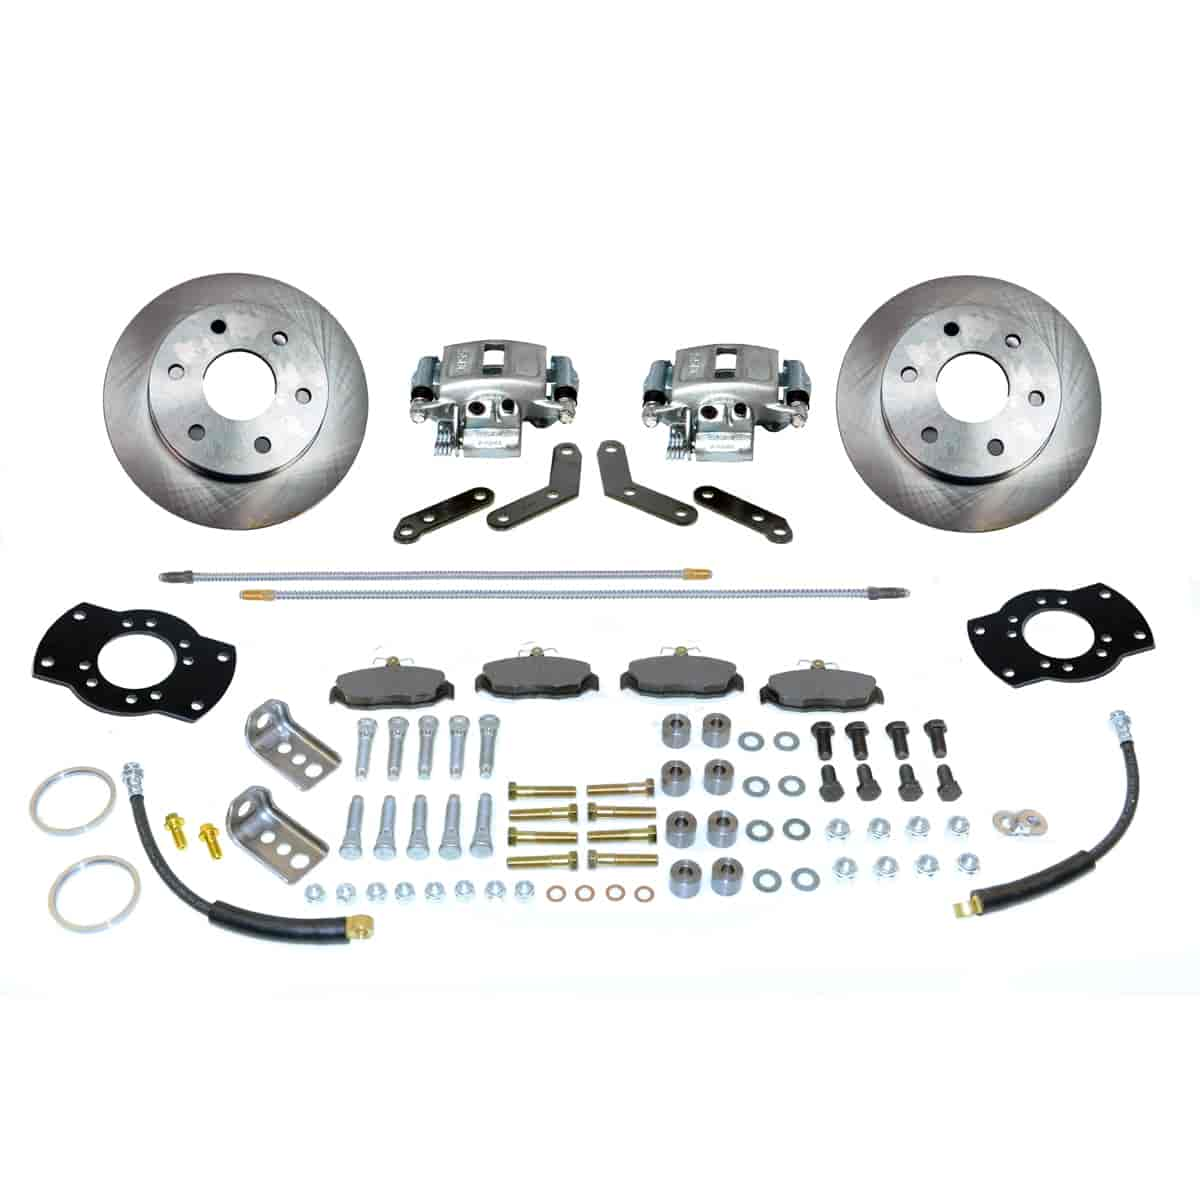 SSBC A126-1 - Stainless Steel Brakes Single Piston Rear Drum to Disc Brake Conversion Kits